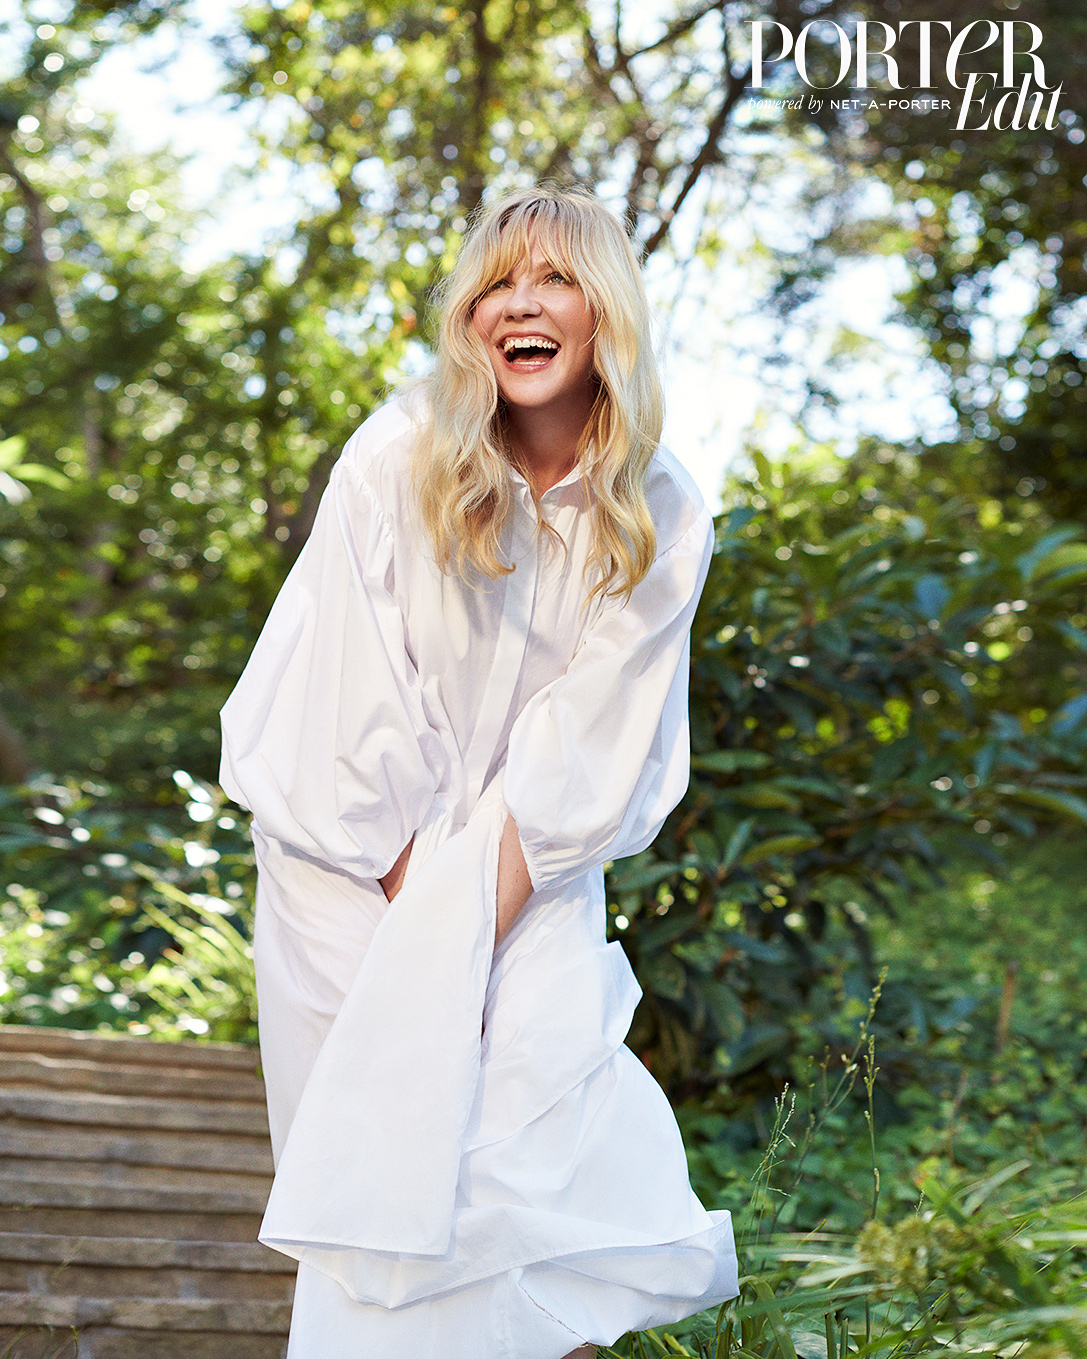 Kirsten Dunst Admits Pregnancy With Jesse Plemons Was a Surprise in Porter Edit